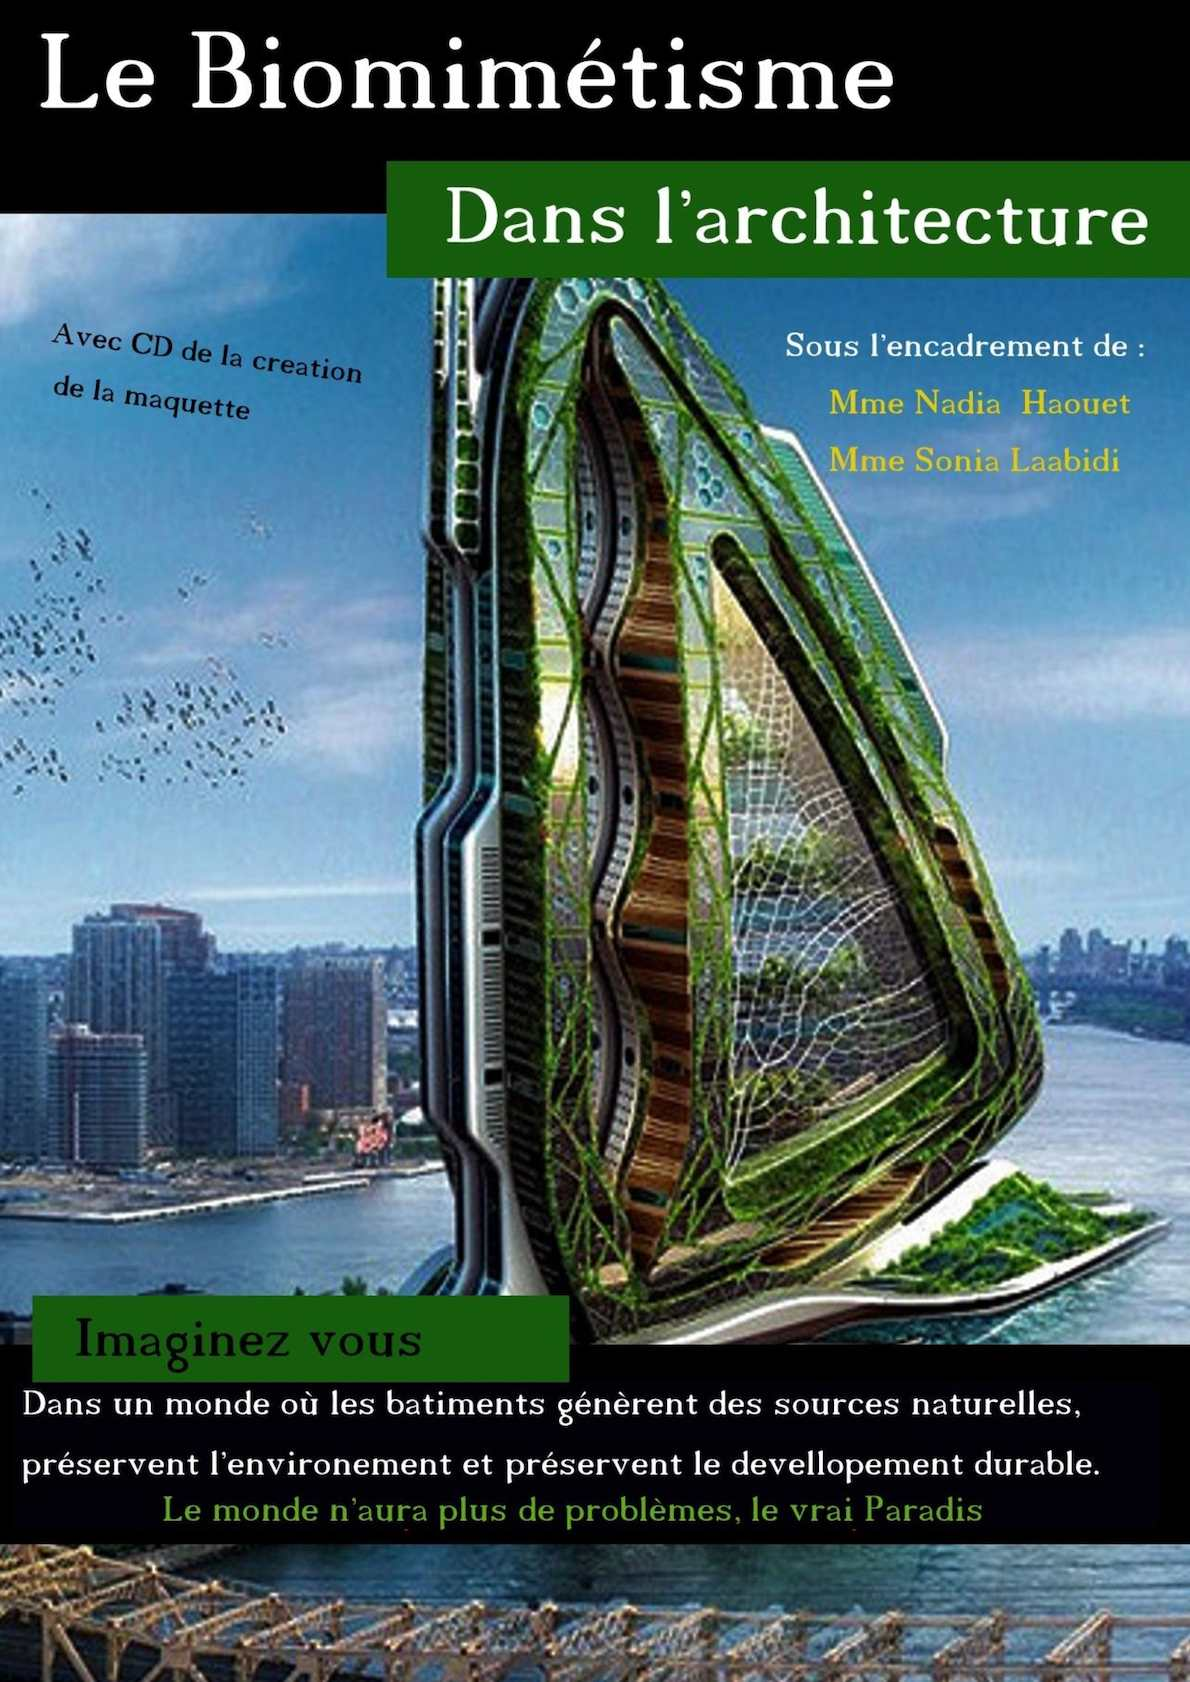 Calam o l 39 architecture biomimetique for L architecture